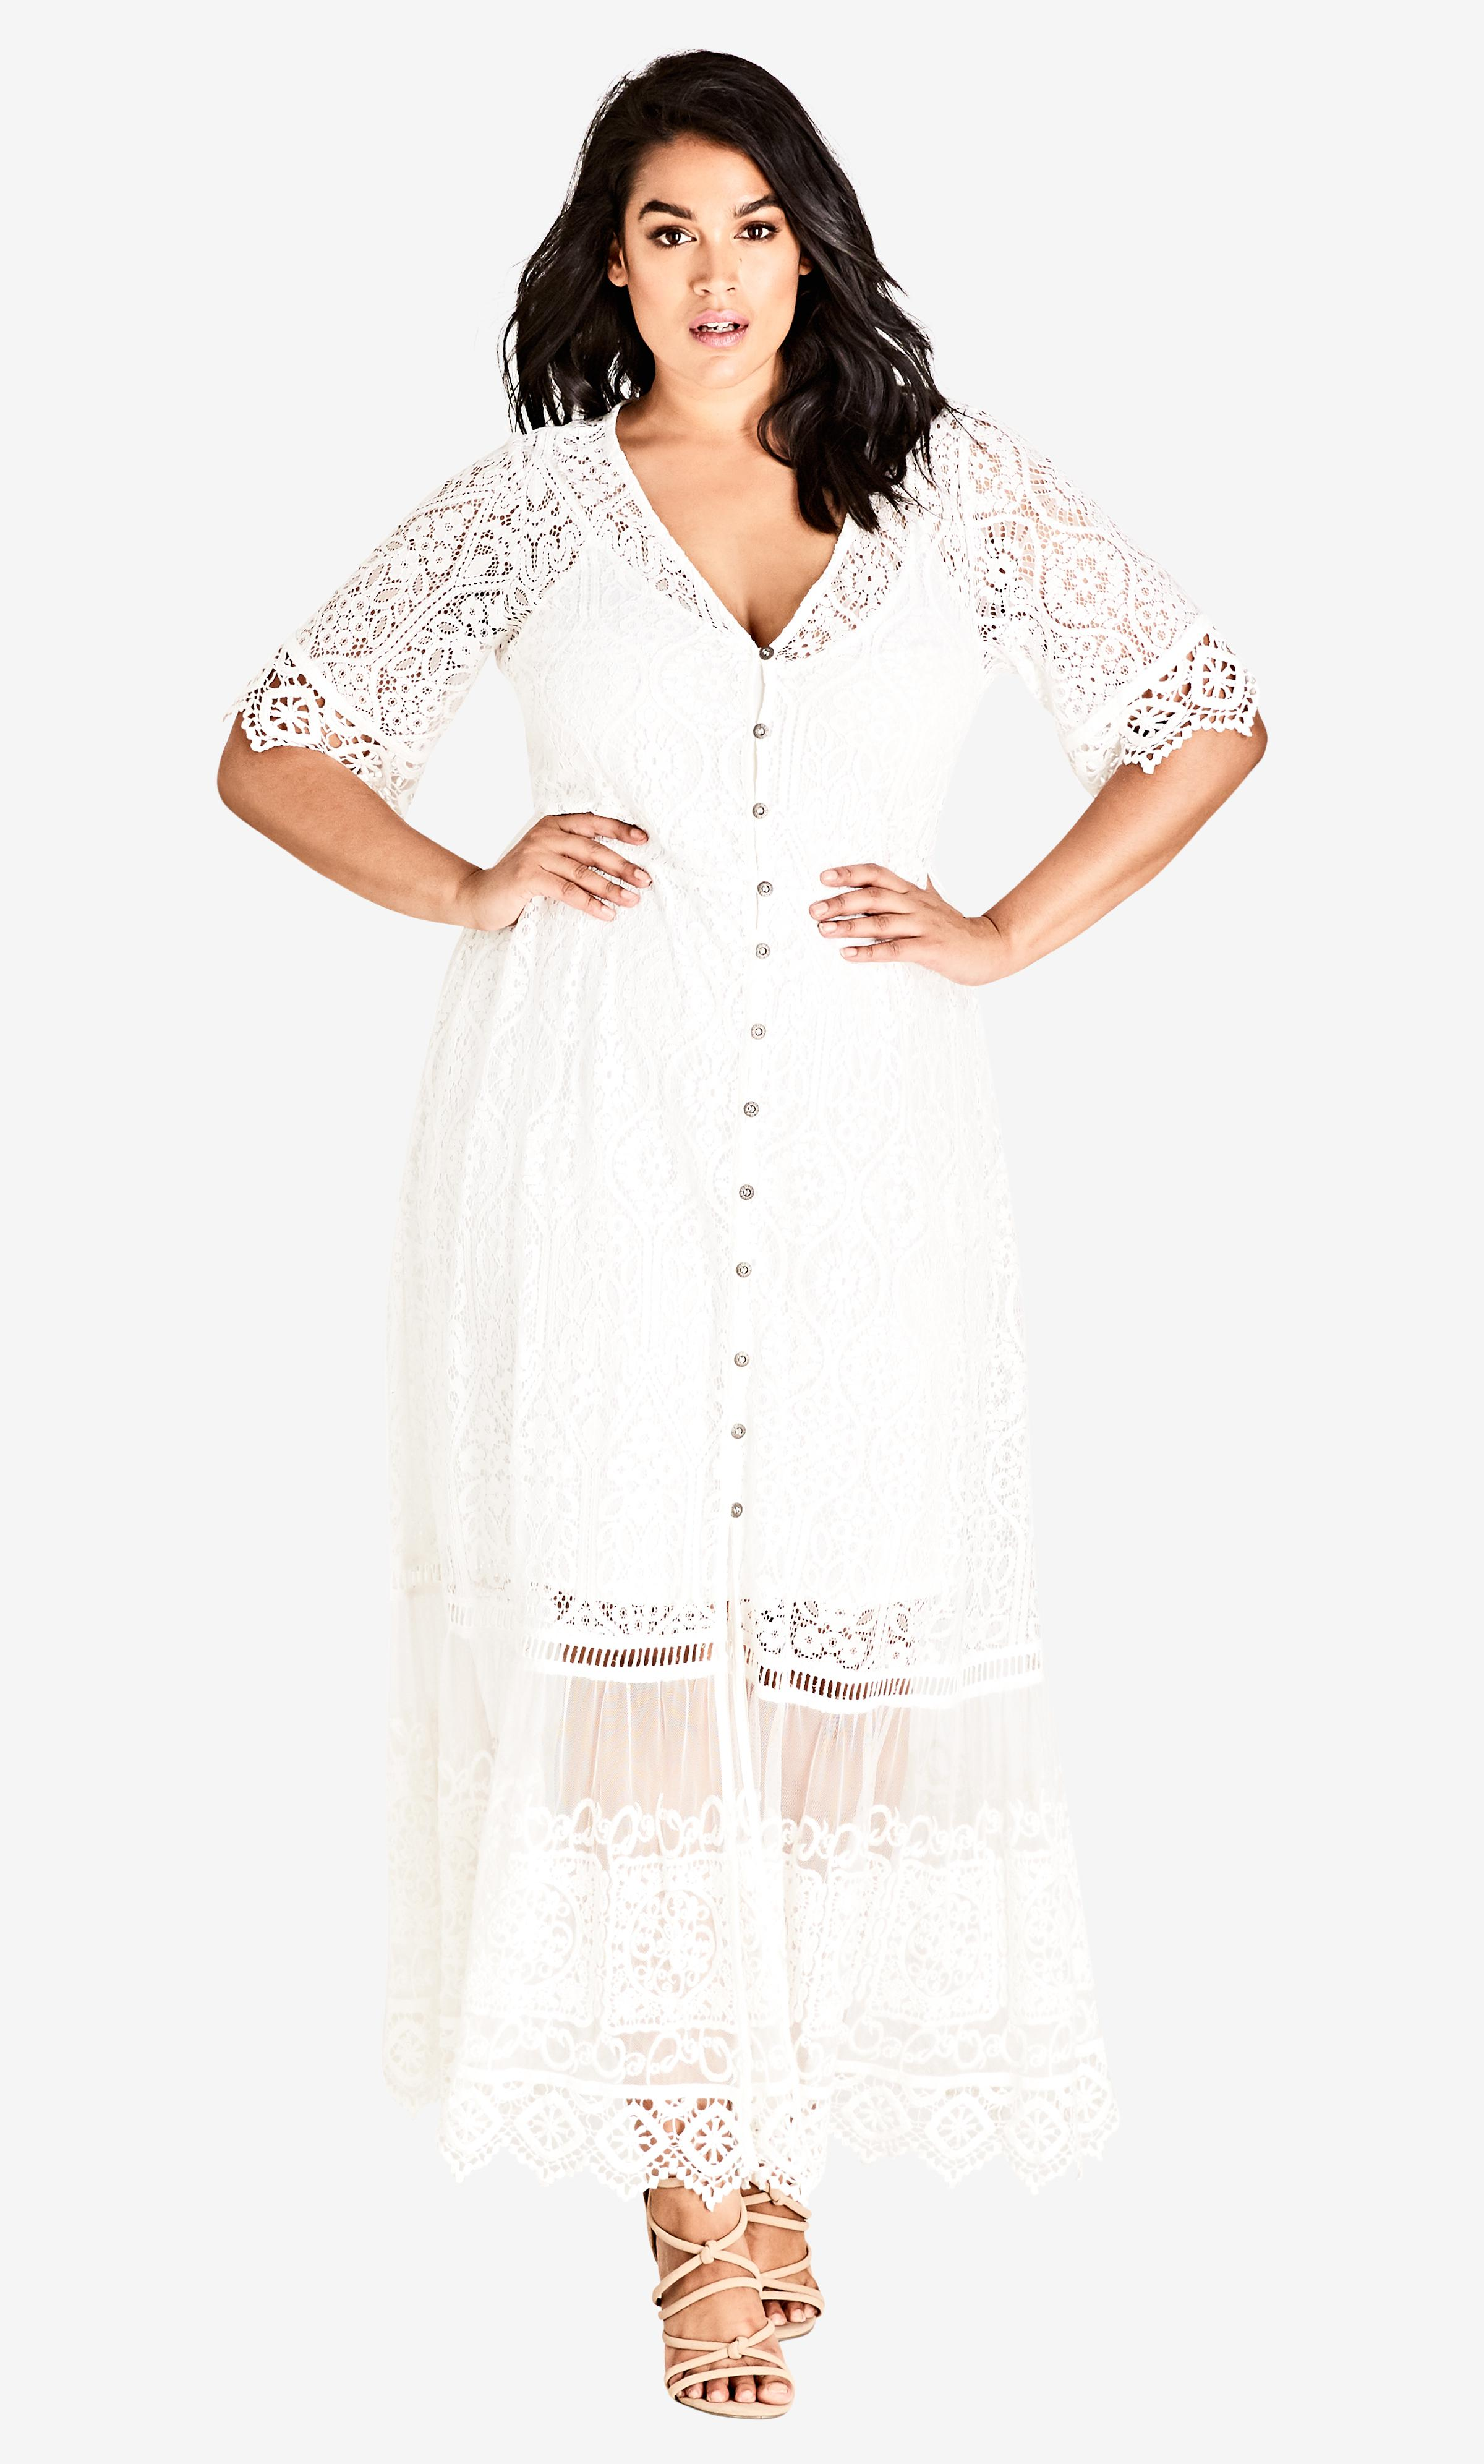 98725f6f7cb3 Lyst - City Chic Ivory Summer Lace Maxi Dress in White - Save 30%